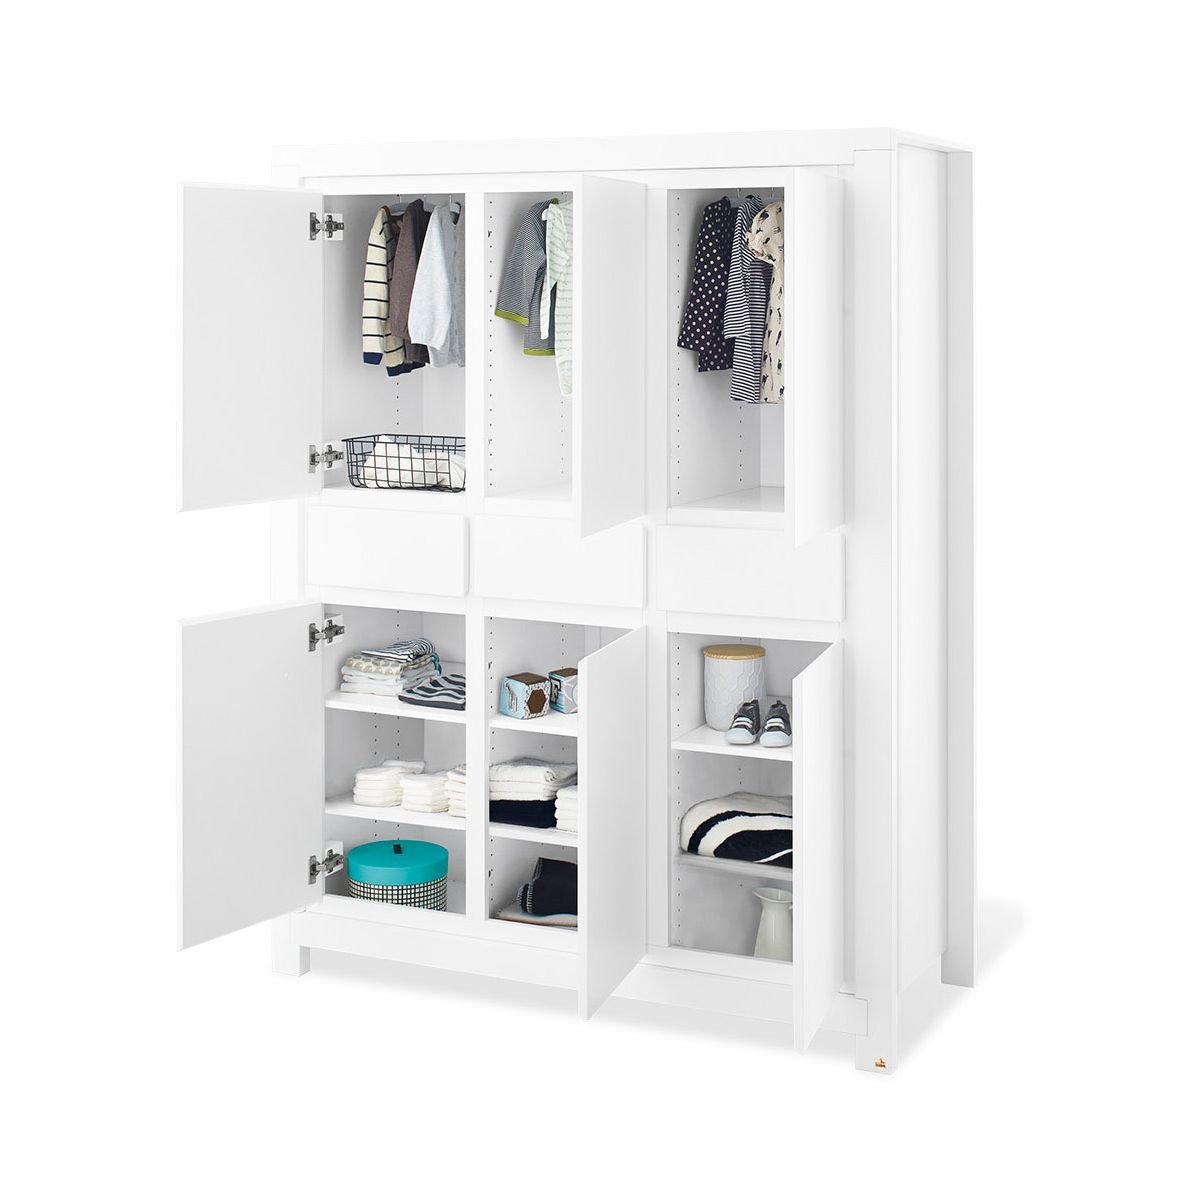 pinolino milk kleiderschrank gro zum toppreis. Black Bedroom Furniture Sets. Home Design Ideas